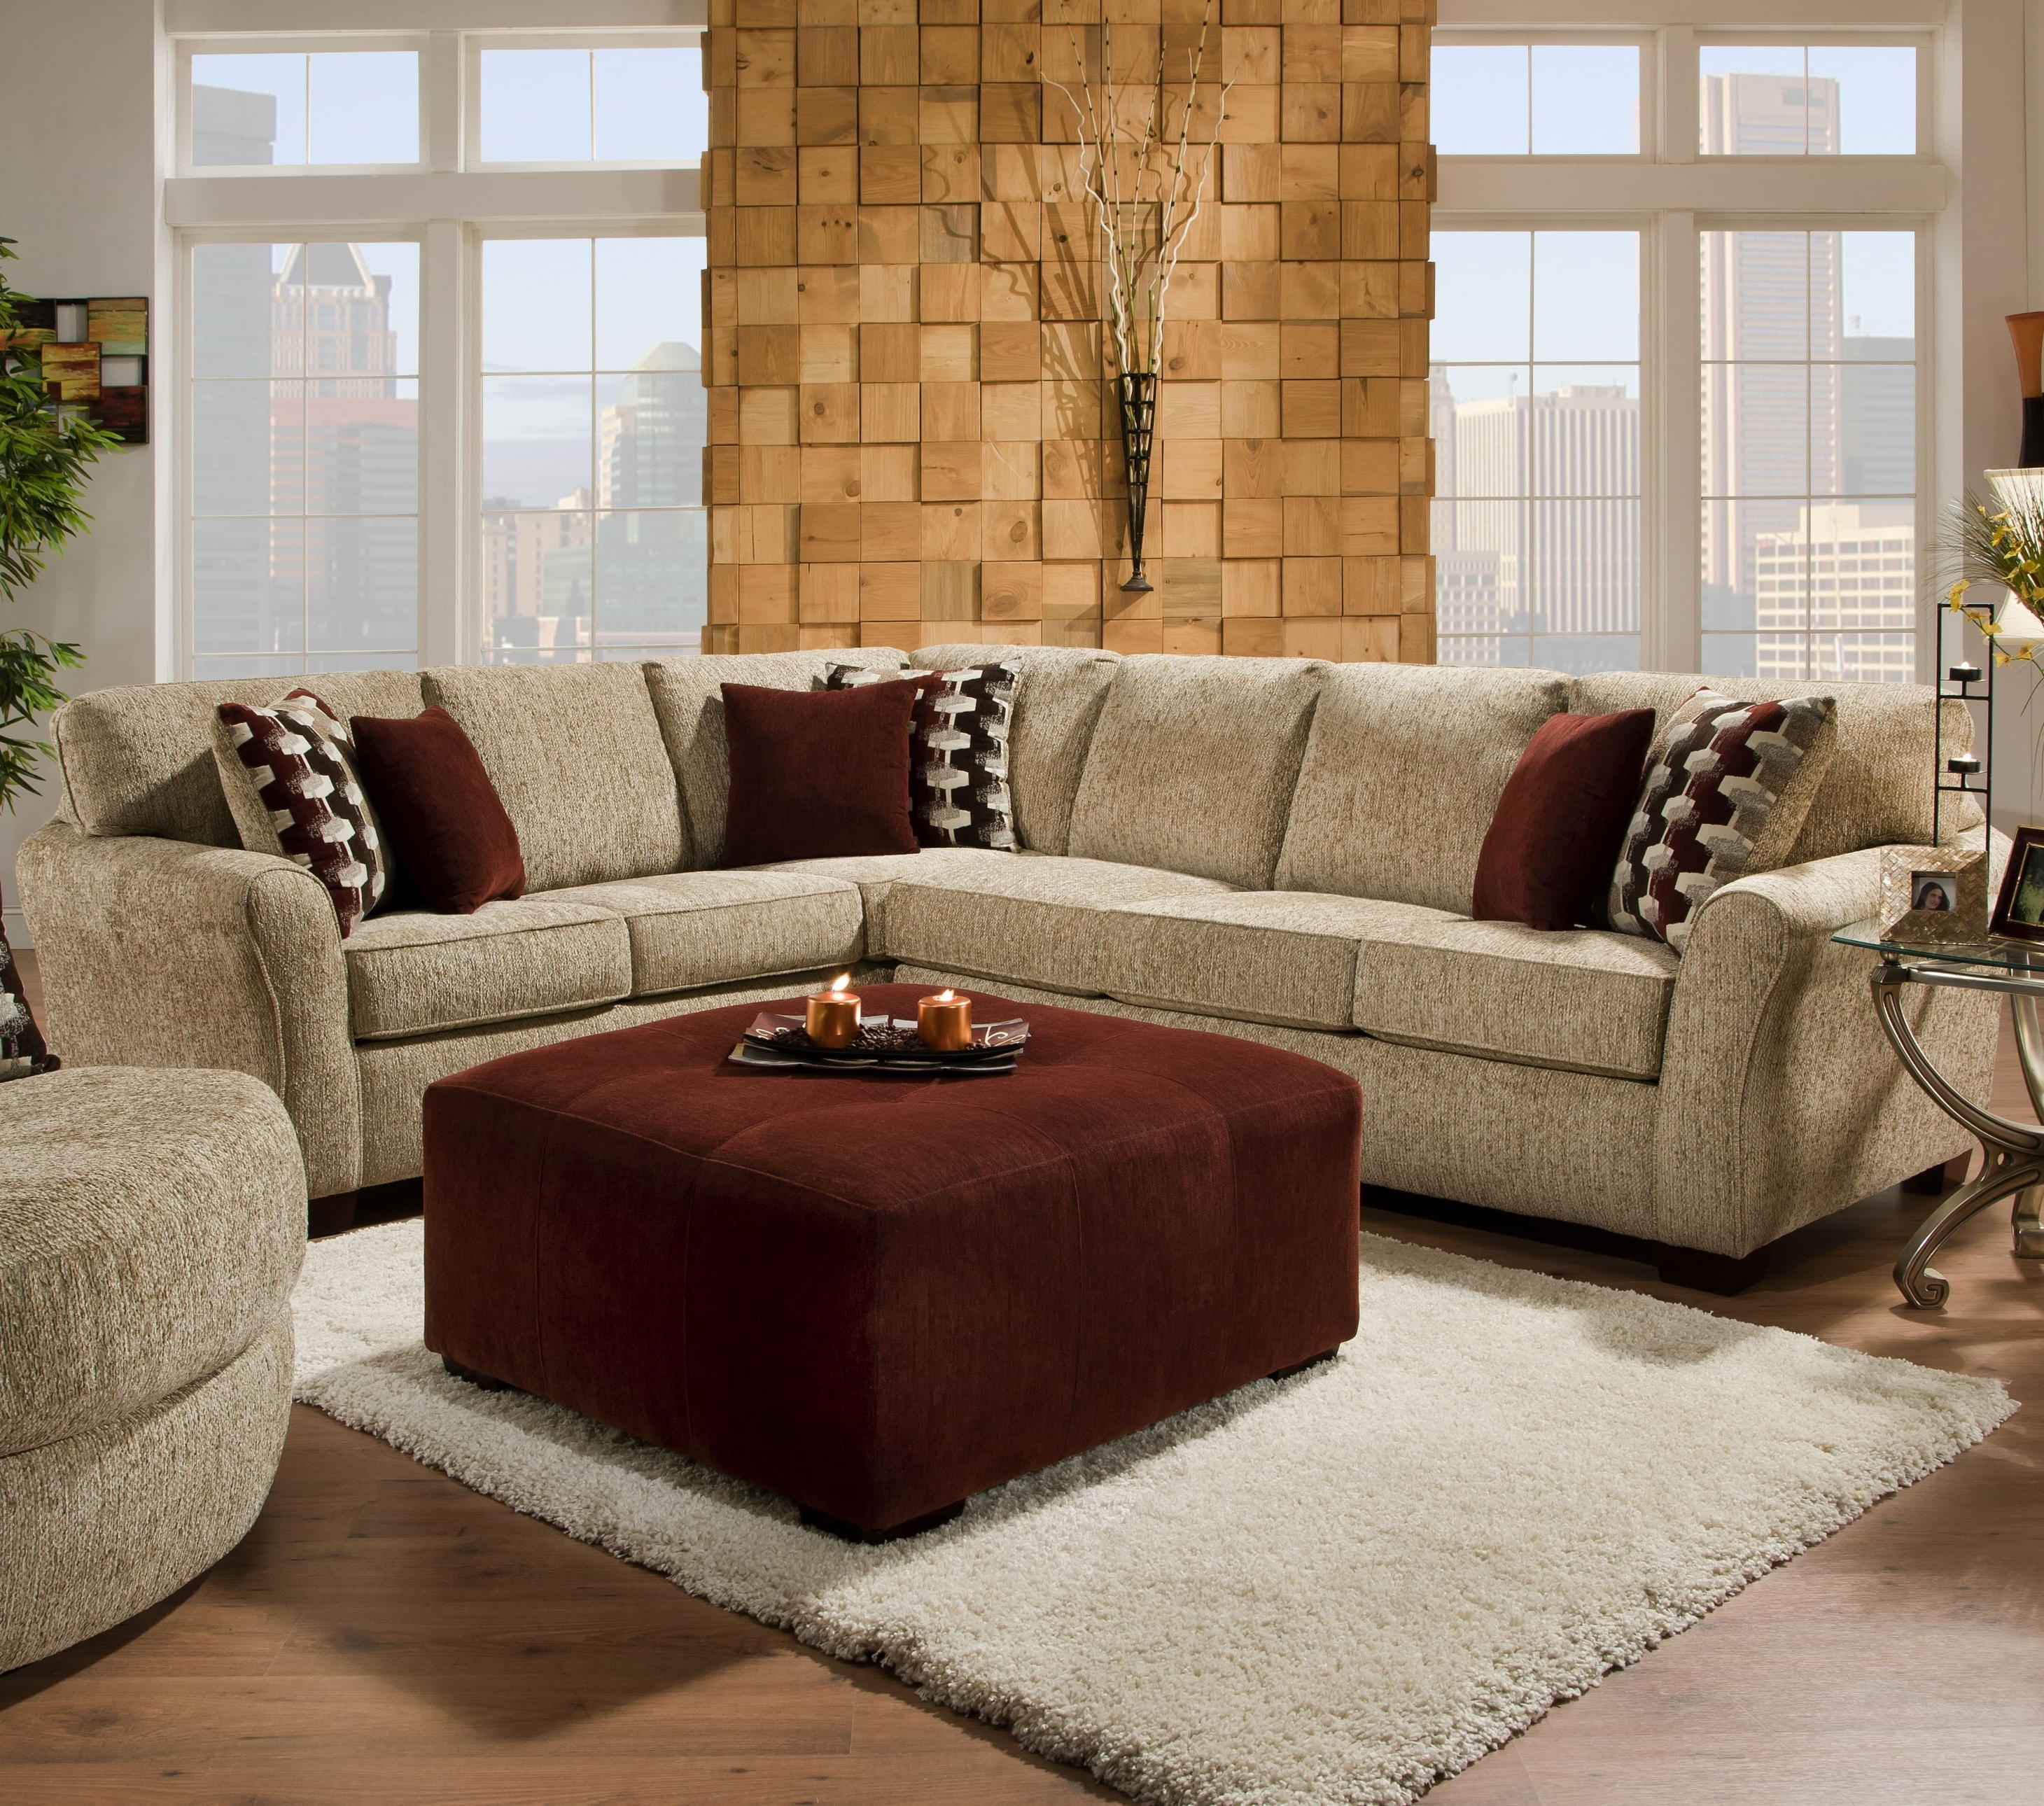 2018 2500 Contemporary Styled Sectional Sofa With Sleepercorinthian Within Johnny Janosik Sectional Sofas (View 1 of 20)